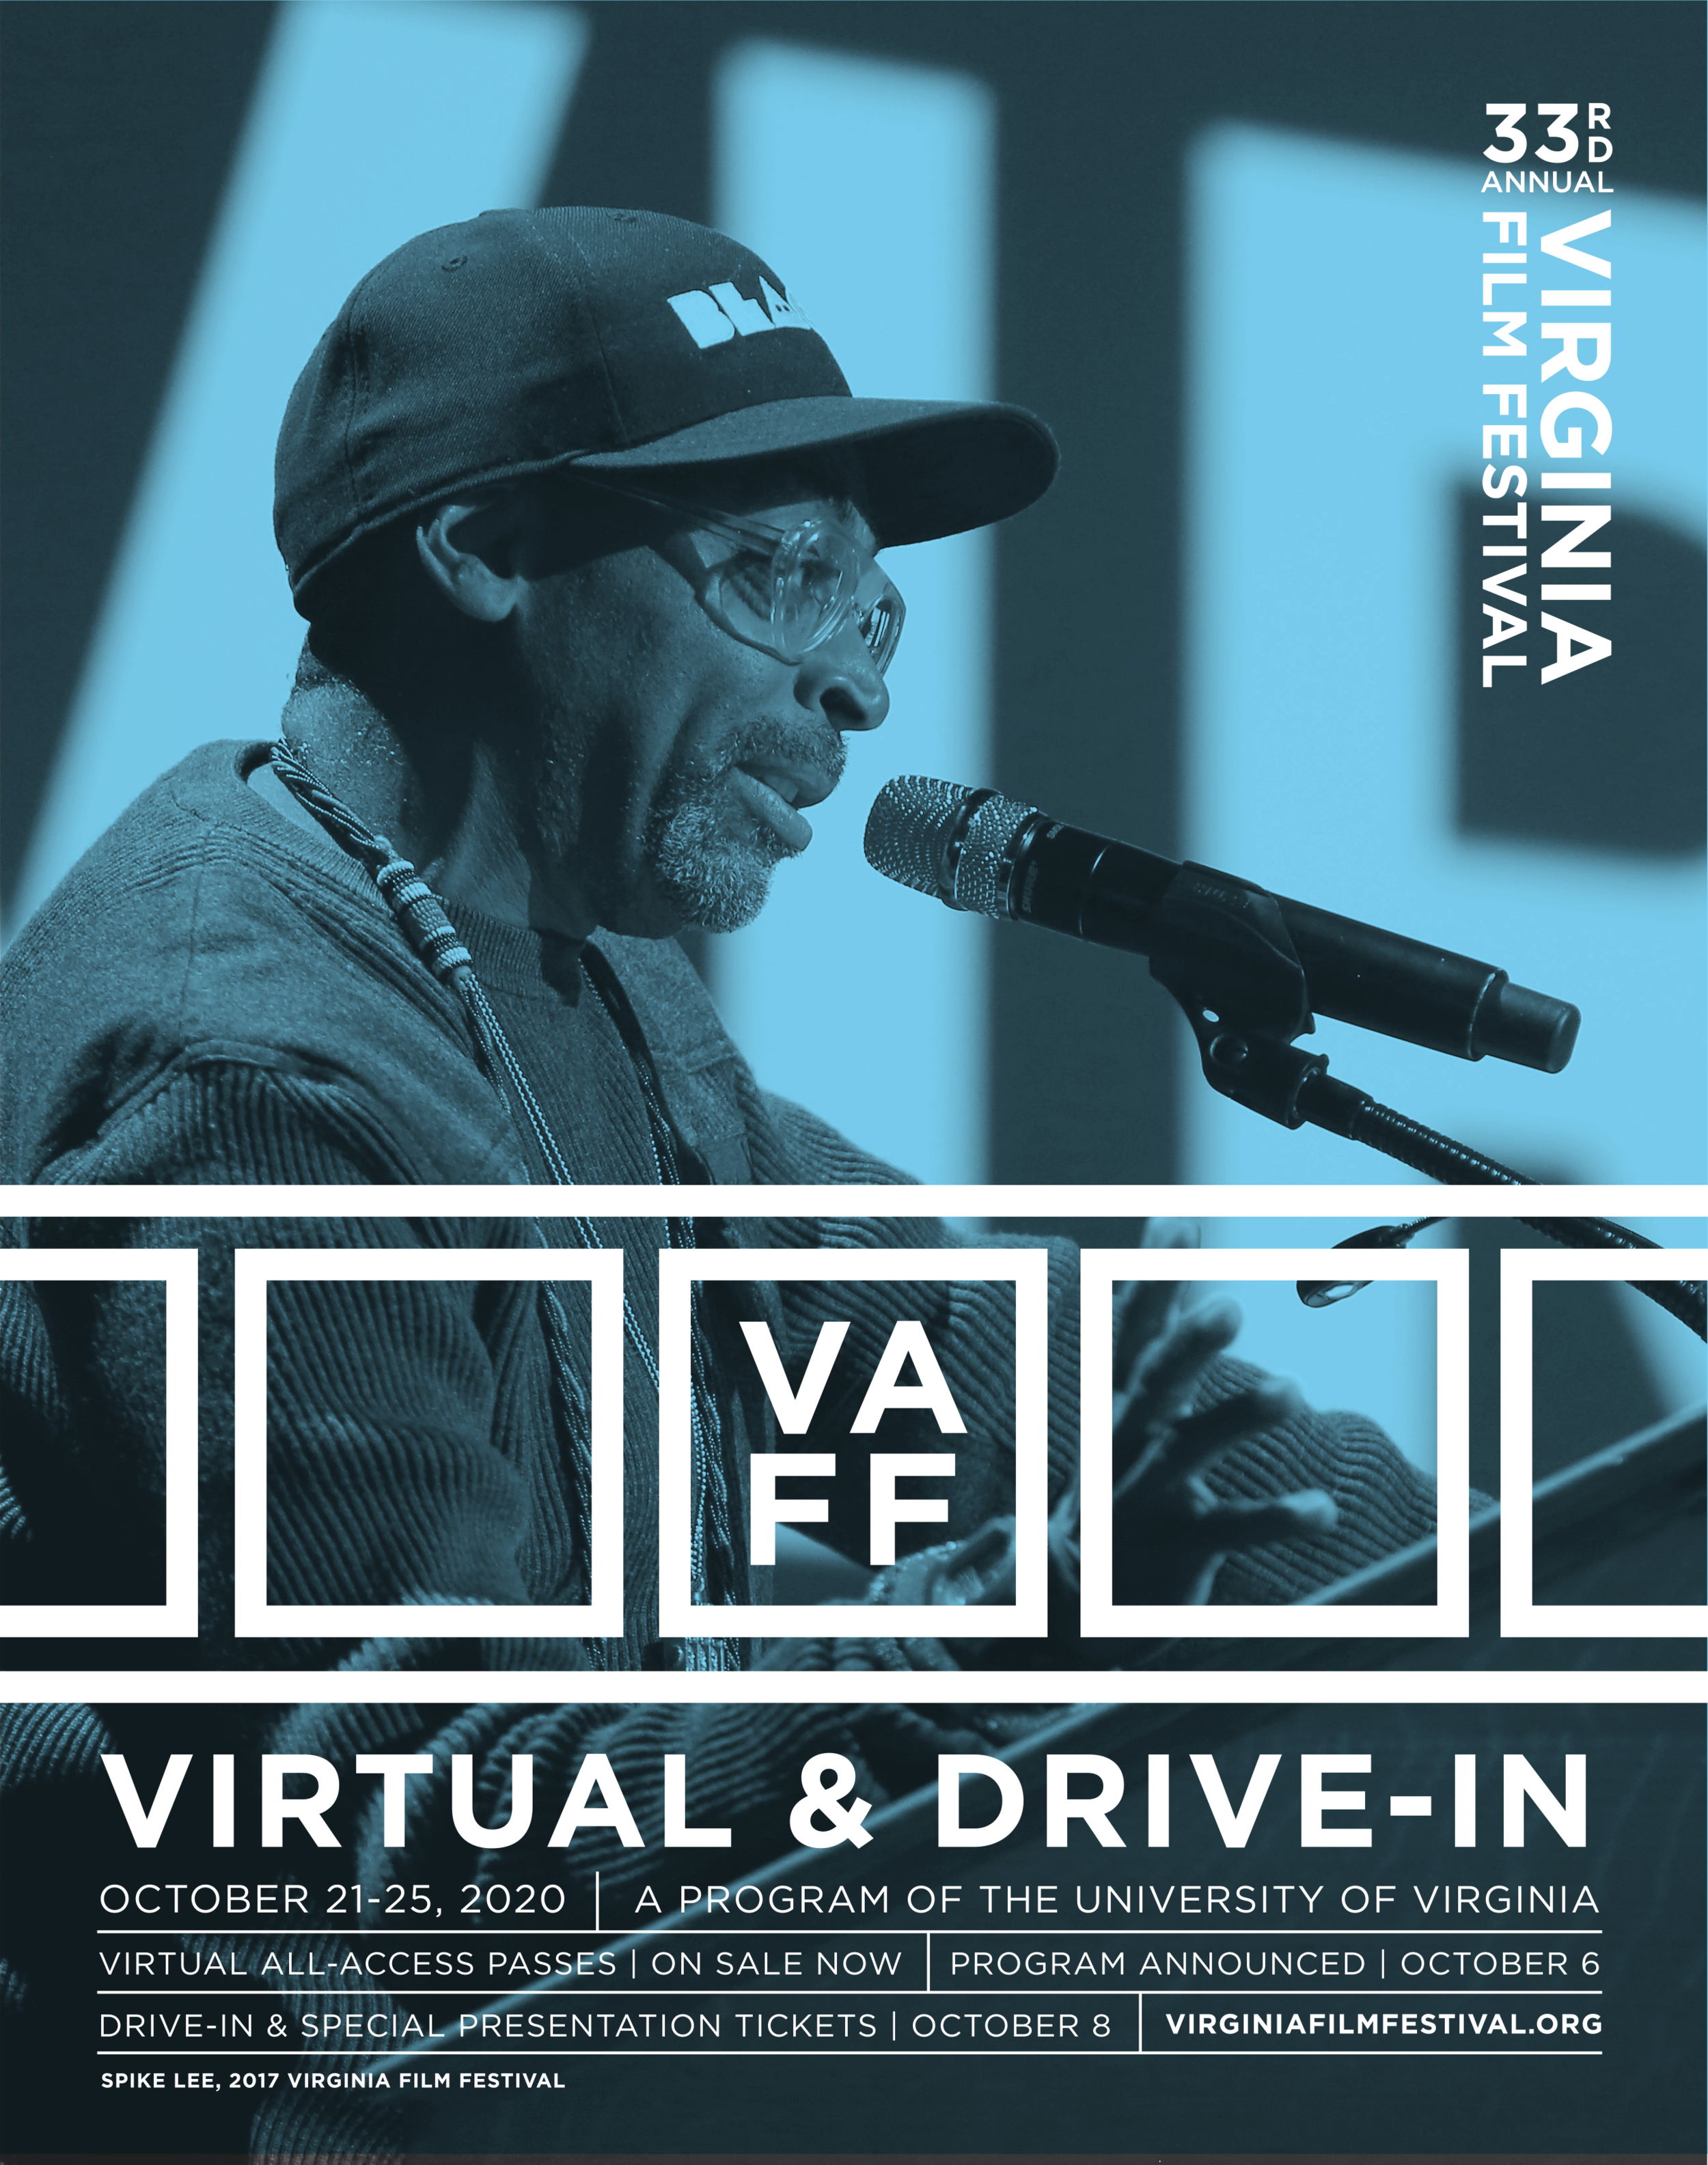 Announcement for the Virginia Film Festival going virtual